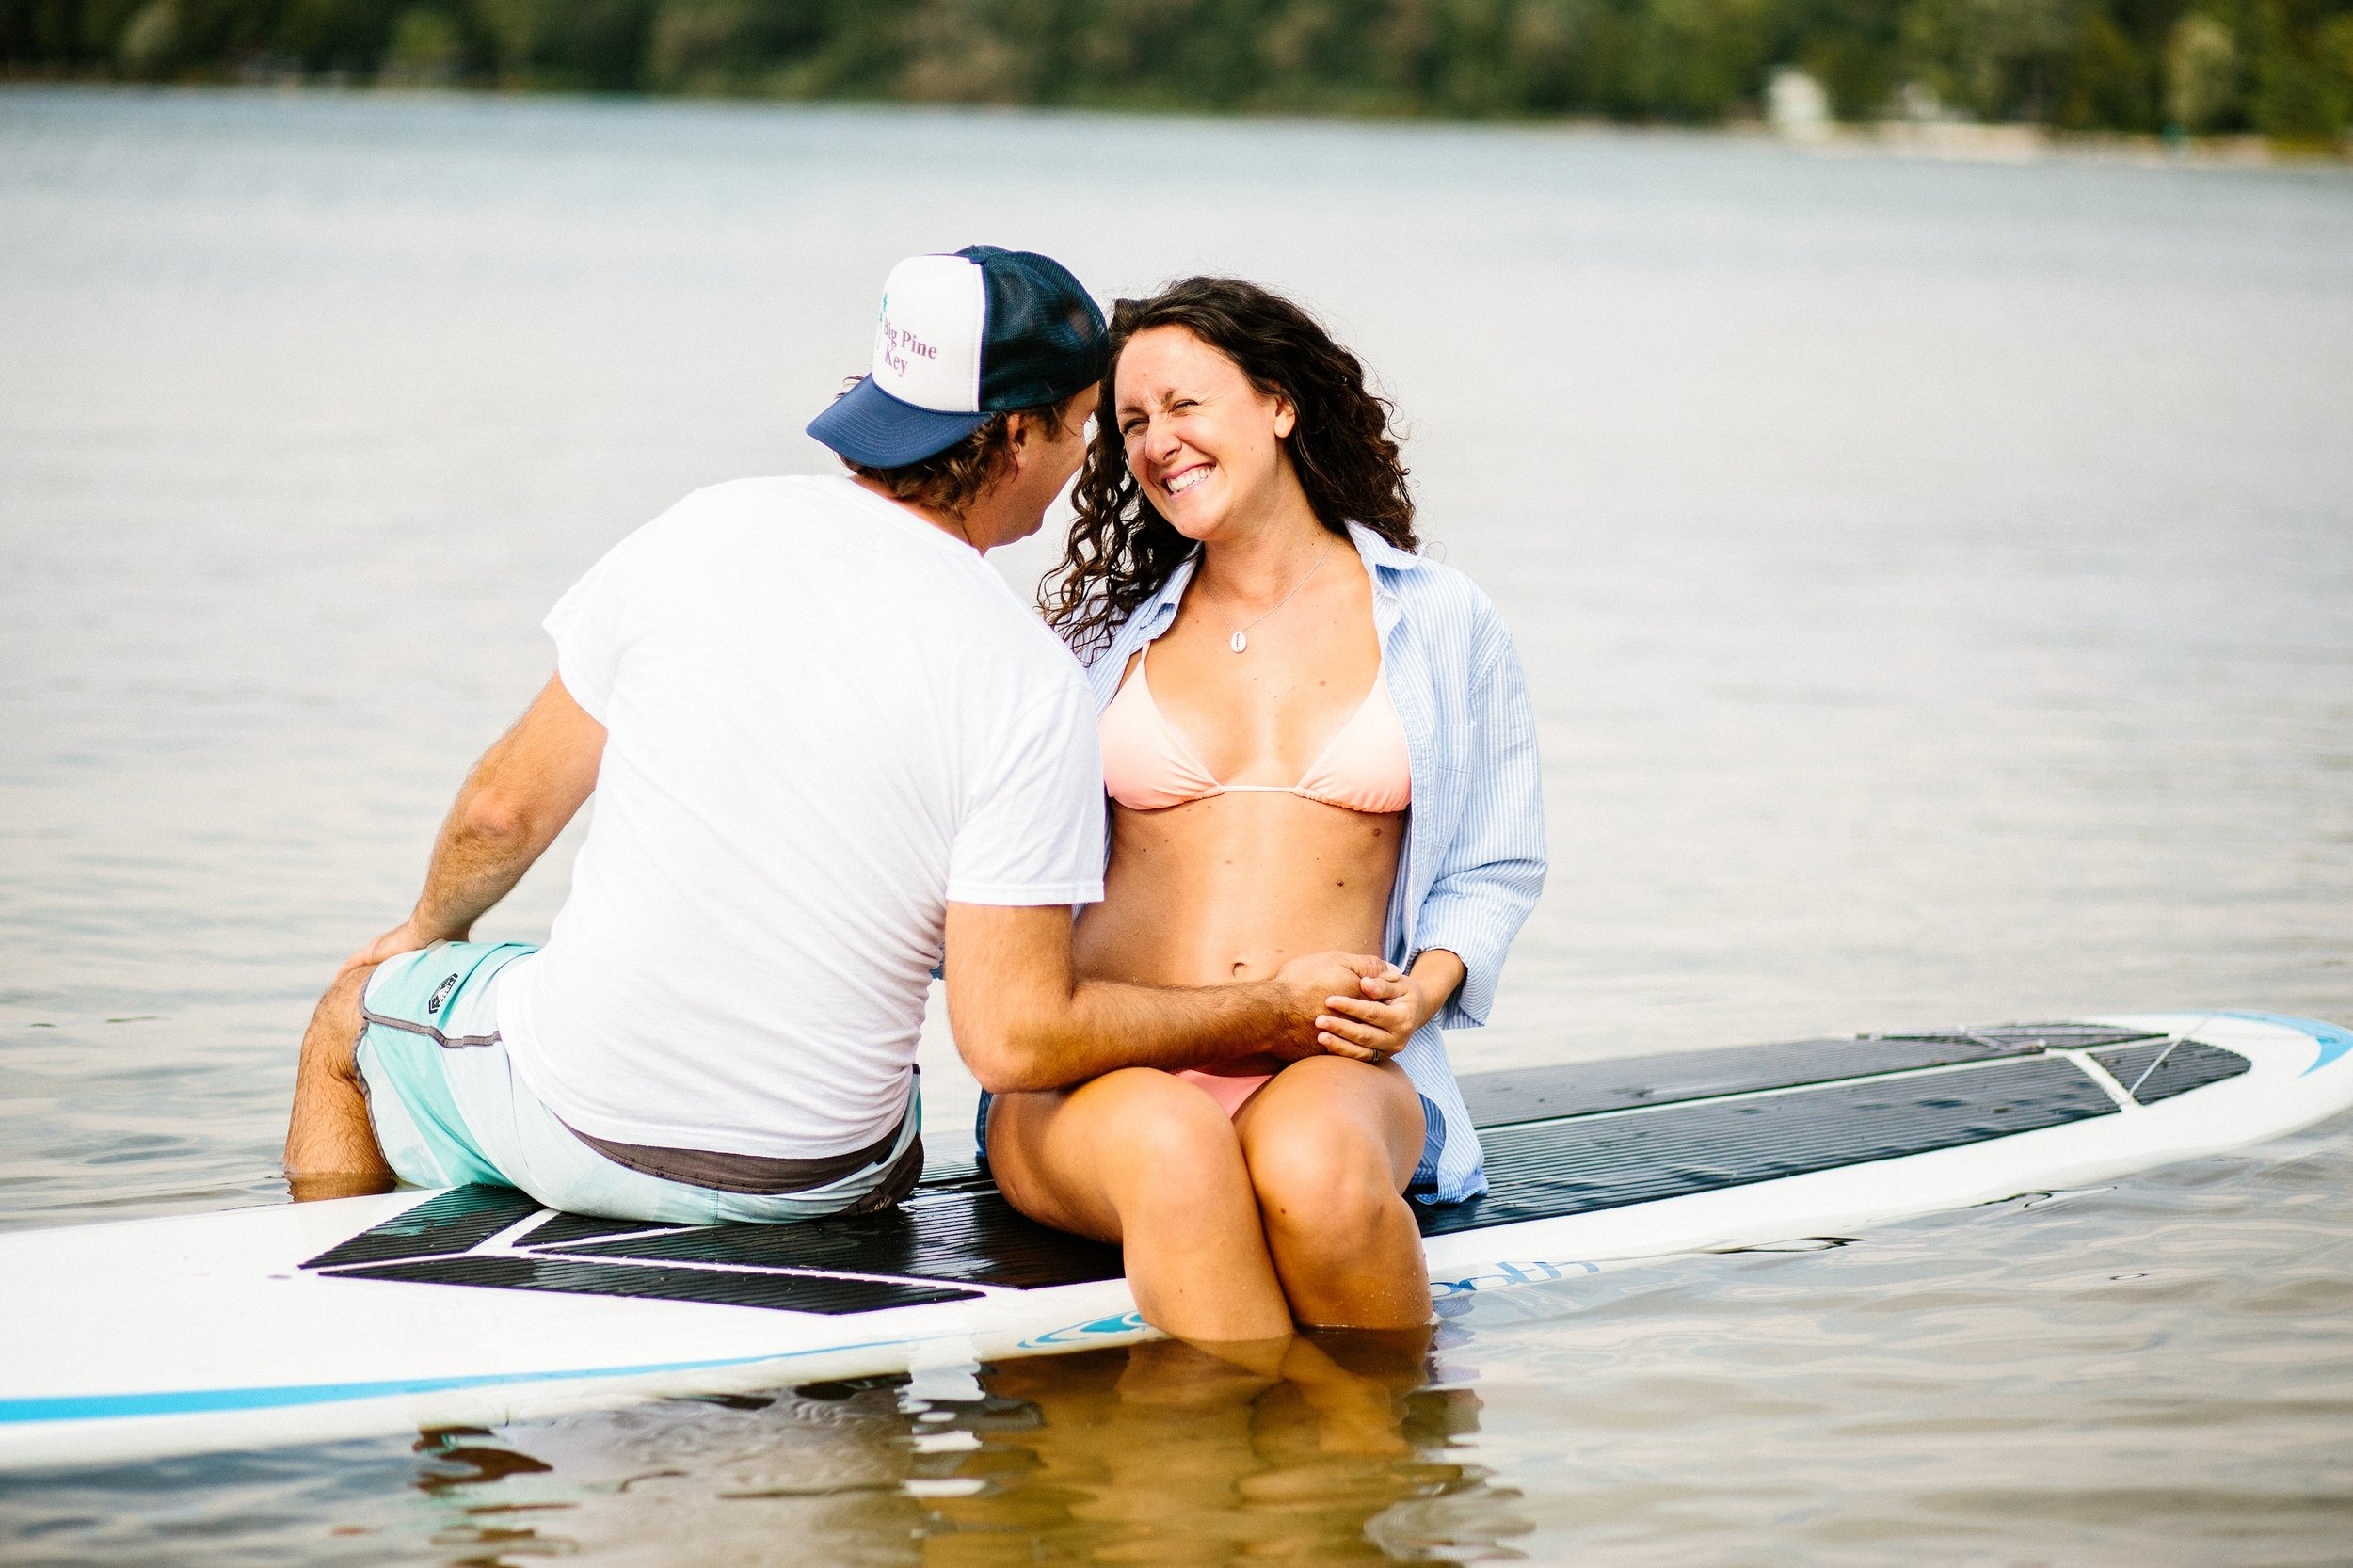 Married Couples Maternity Beach Portrait Session on Paddle Board in Door County WI by Seattle Photographer Janelle Elaine Photography.jpg